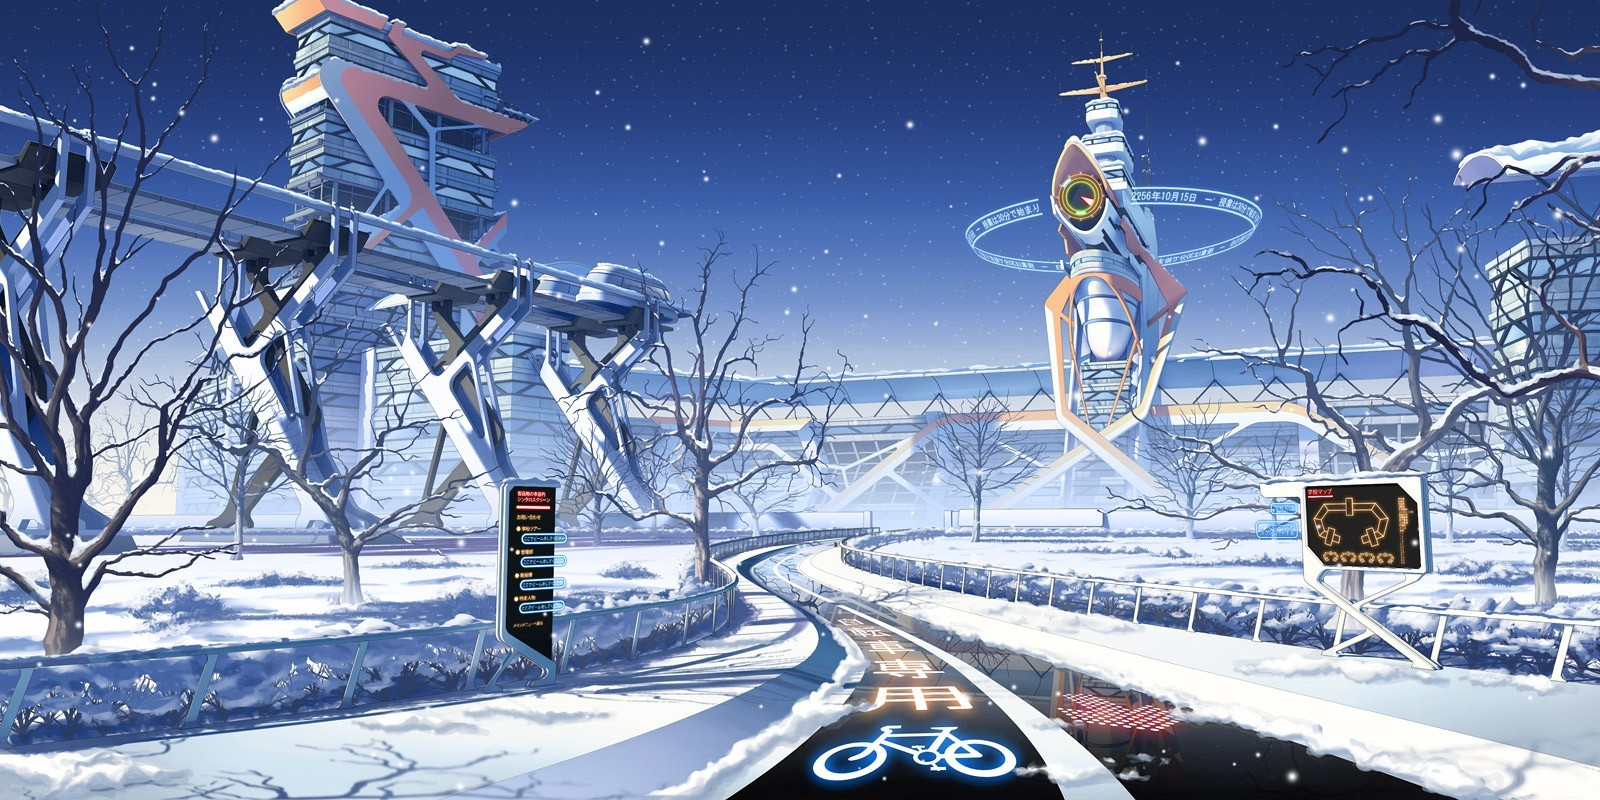 Anime Winter Wallpaper Page 1